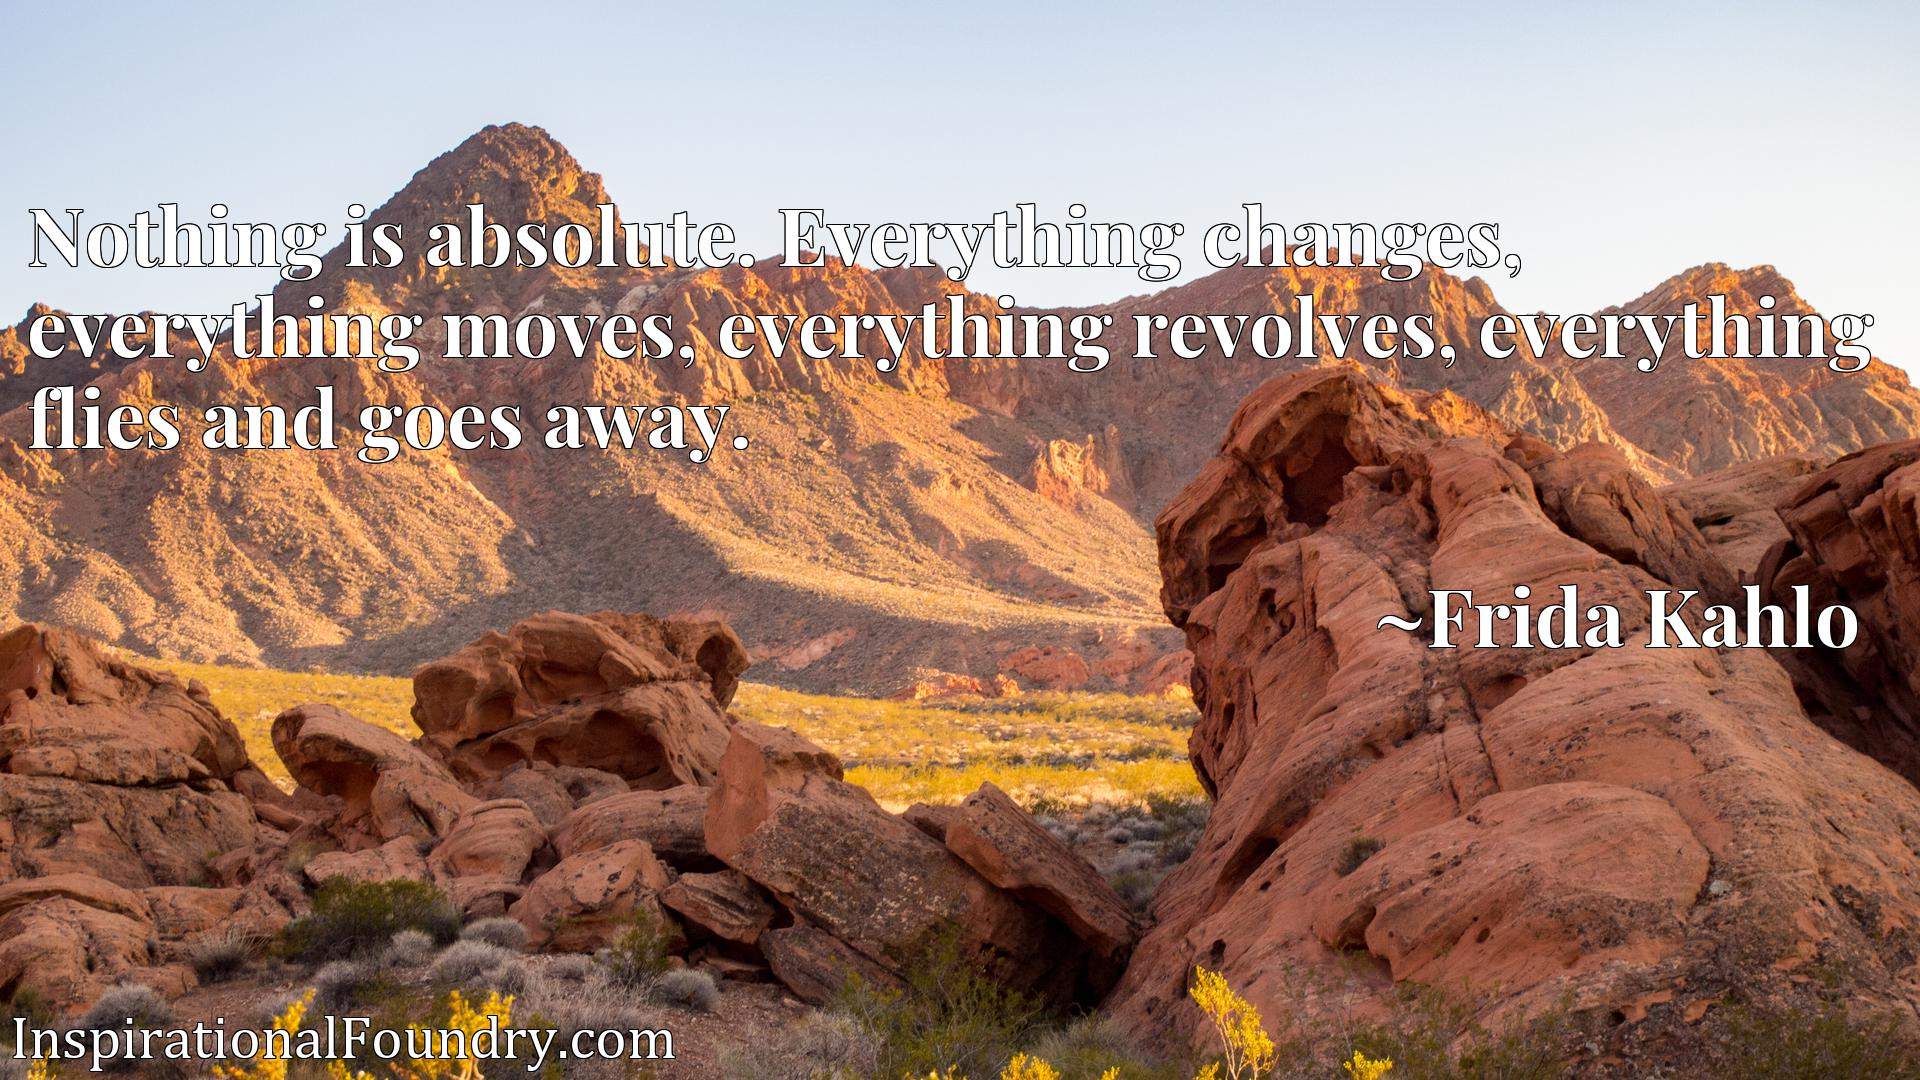 Nothing is absolute. Everything changes, everything moves, everything revolves, everything flies and goes away.